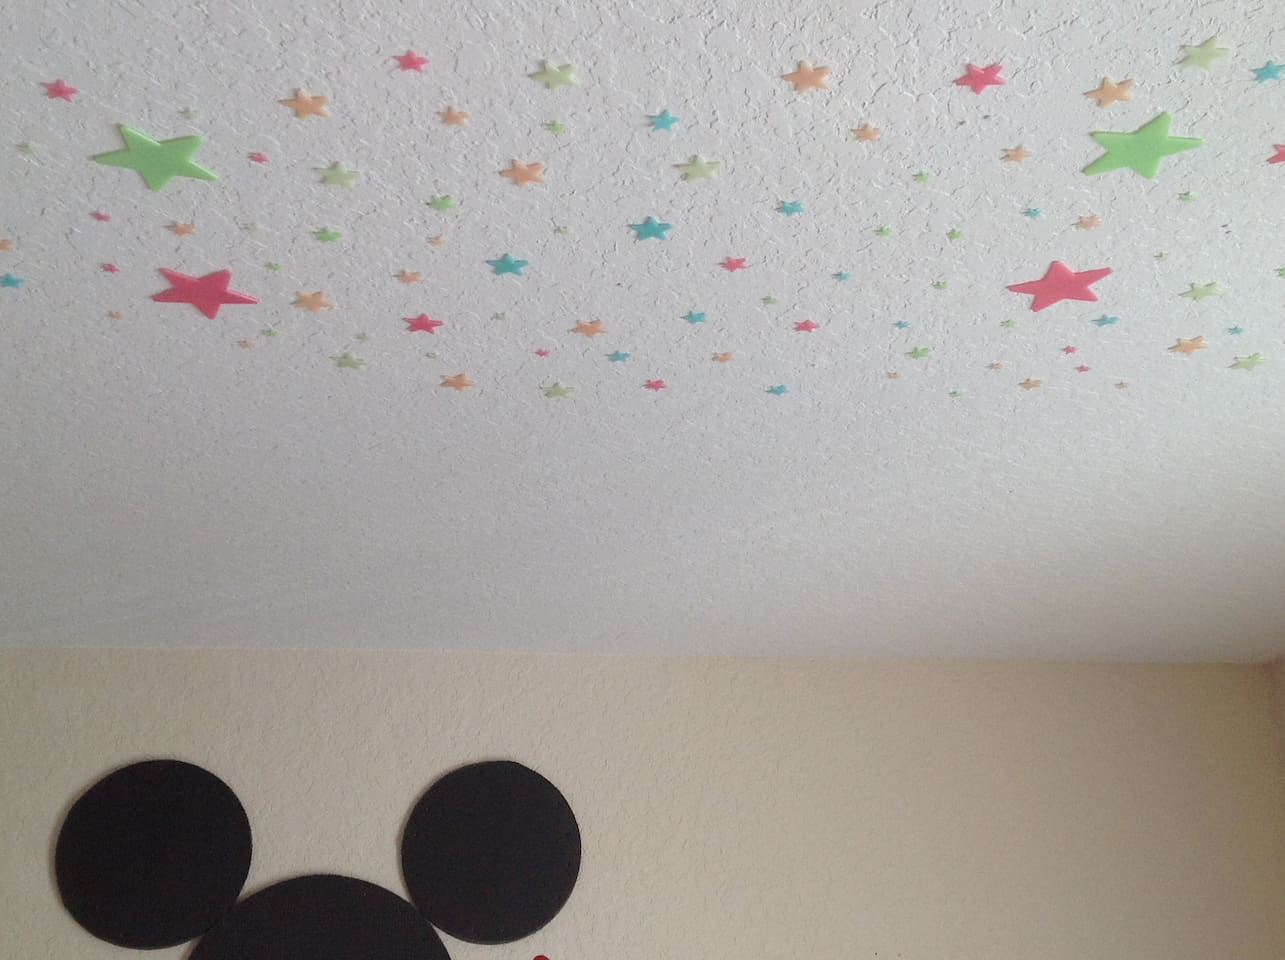 Glow in the dark stars that take in solor power then light up at night